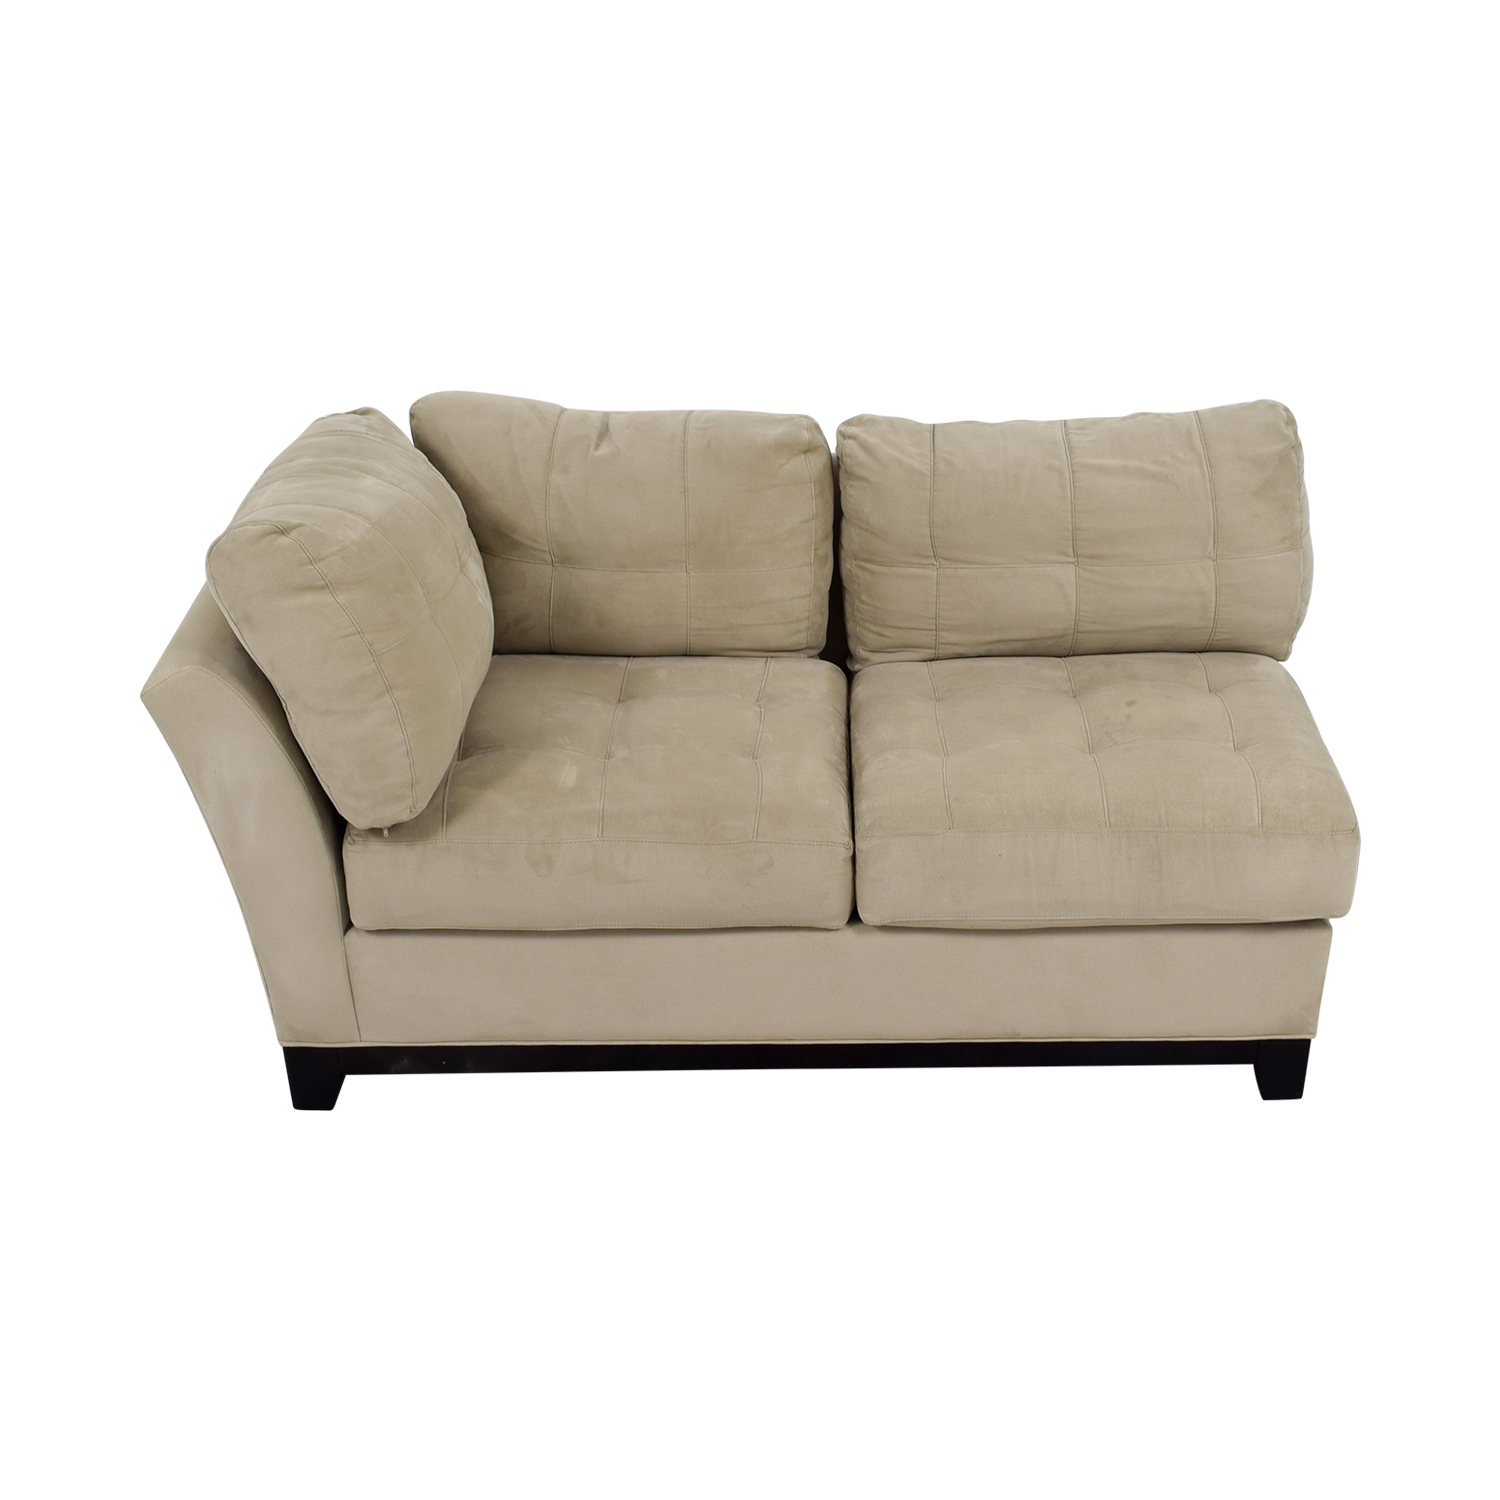 Raymour & Flanigan Raymour & Flanigan Grey Microfiber Loveseat coupon